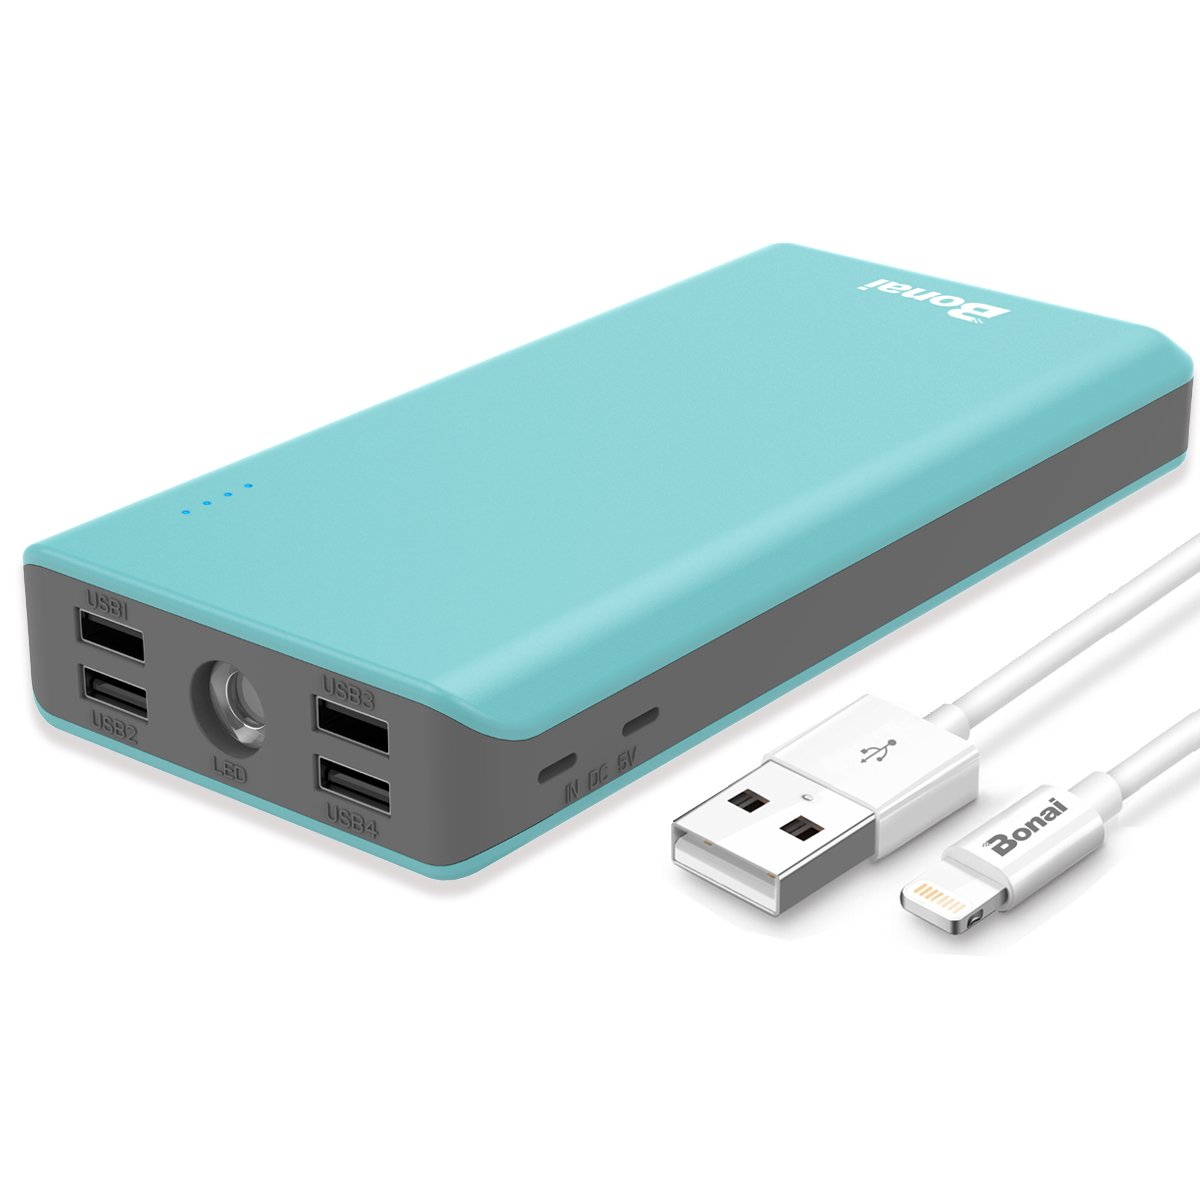 Portable Charger 30000mAh, (Ultra High Capacity)(Flashlight)(Outdoor) BONAI 5.6A 4-Port Output External Battery Pack, Polymer Fast 4A Input Power Bank for iPhone iPad Samsung Galaxy and More - Mint by BONAI